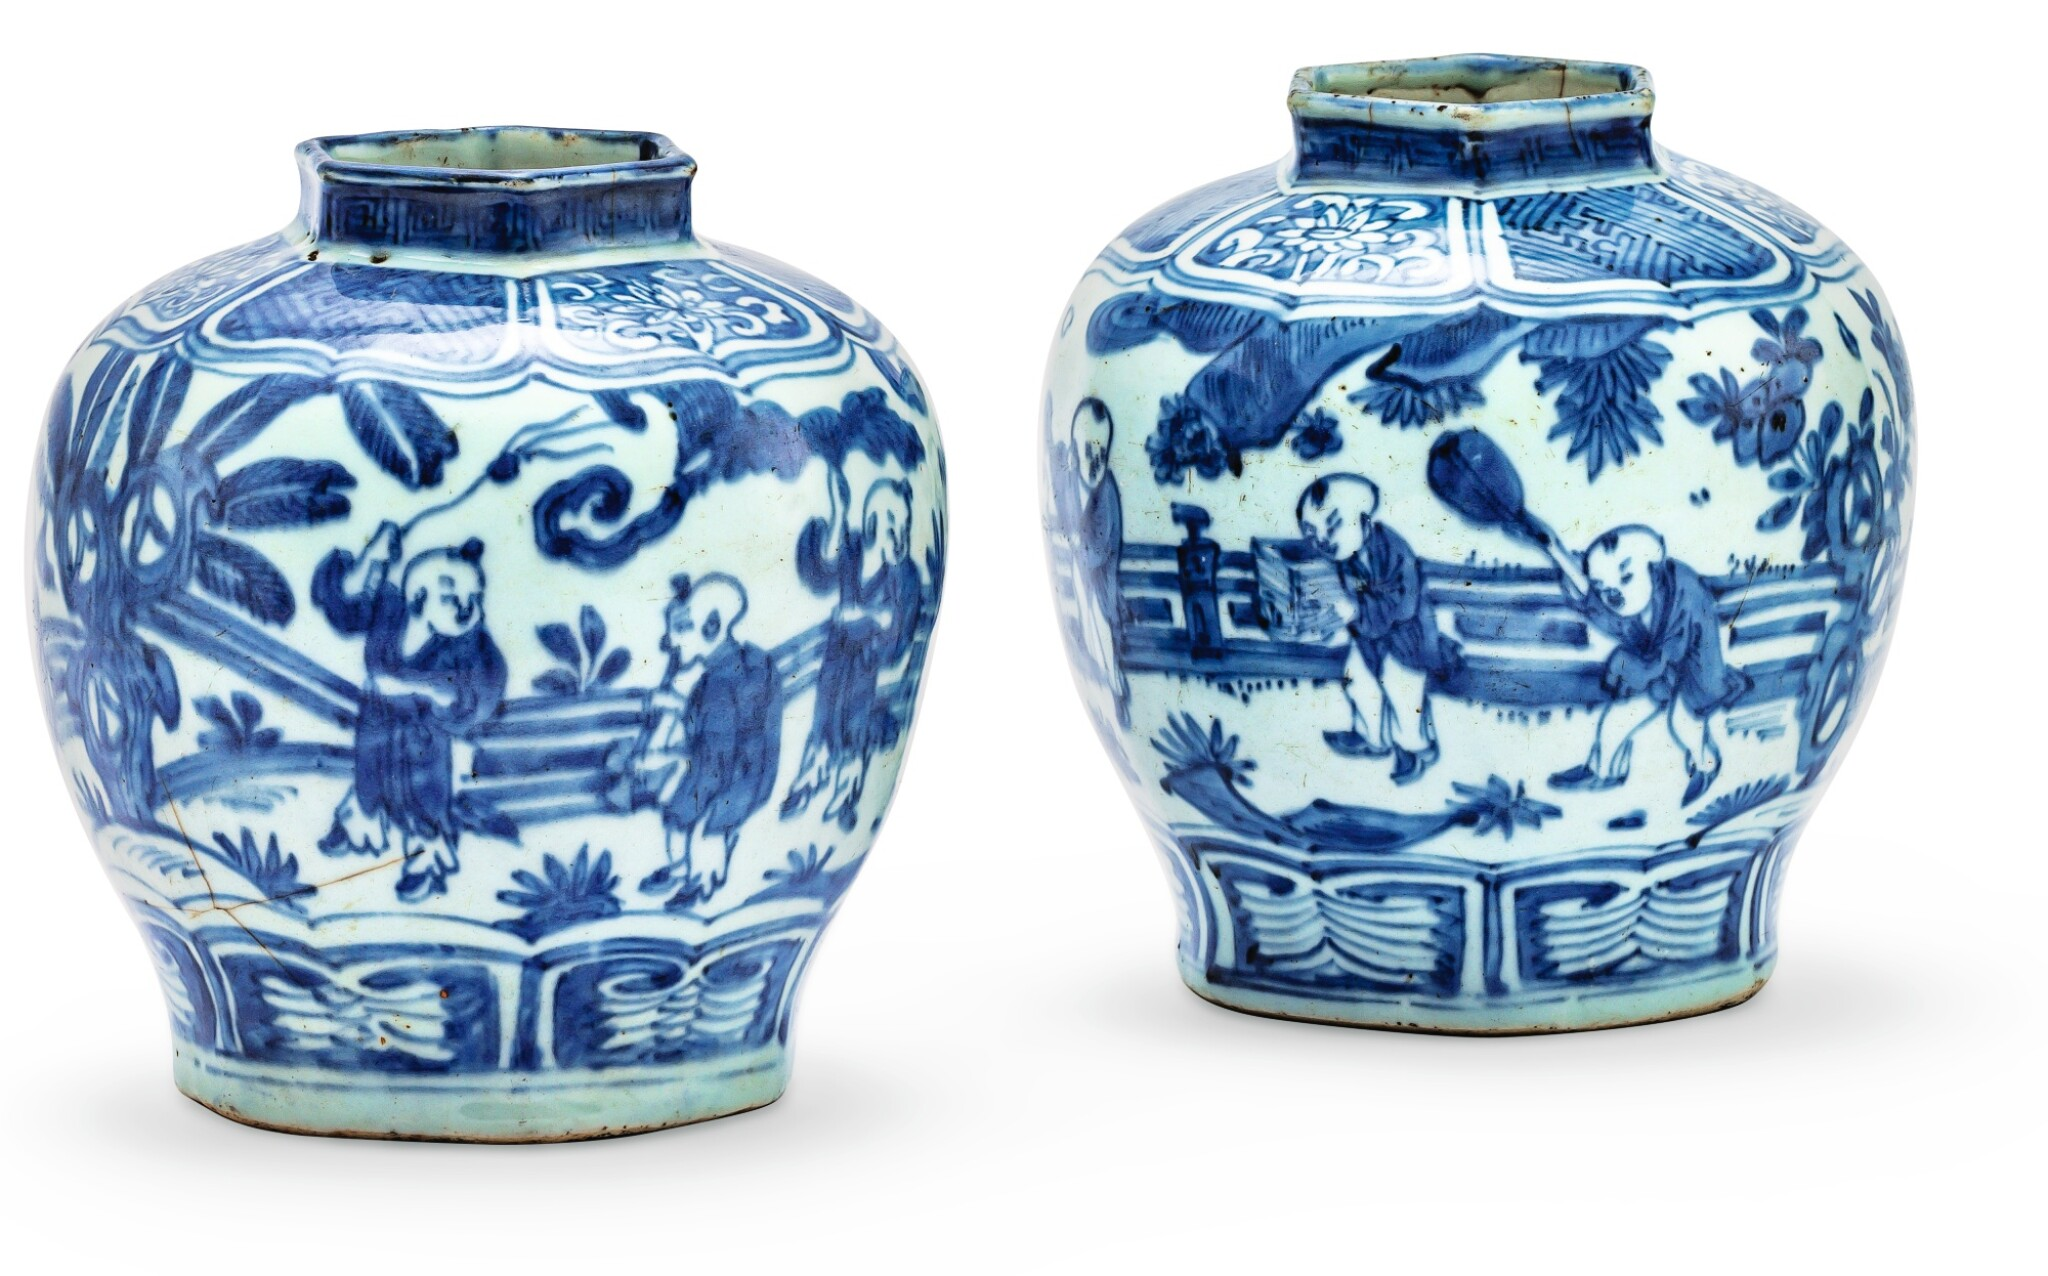 DEUX VASES EN PORCELAINE BLEU BLANC FIN DE LA DYNASTIE MING  | 明晚期 青花嬰戲圖六方口小罐兩件 | Two blue and white baluster jars, late Ming Dynasty